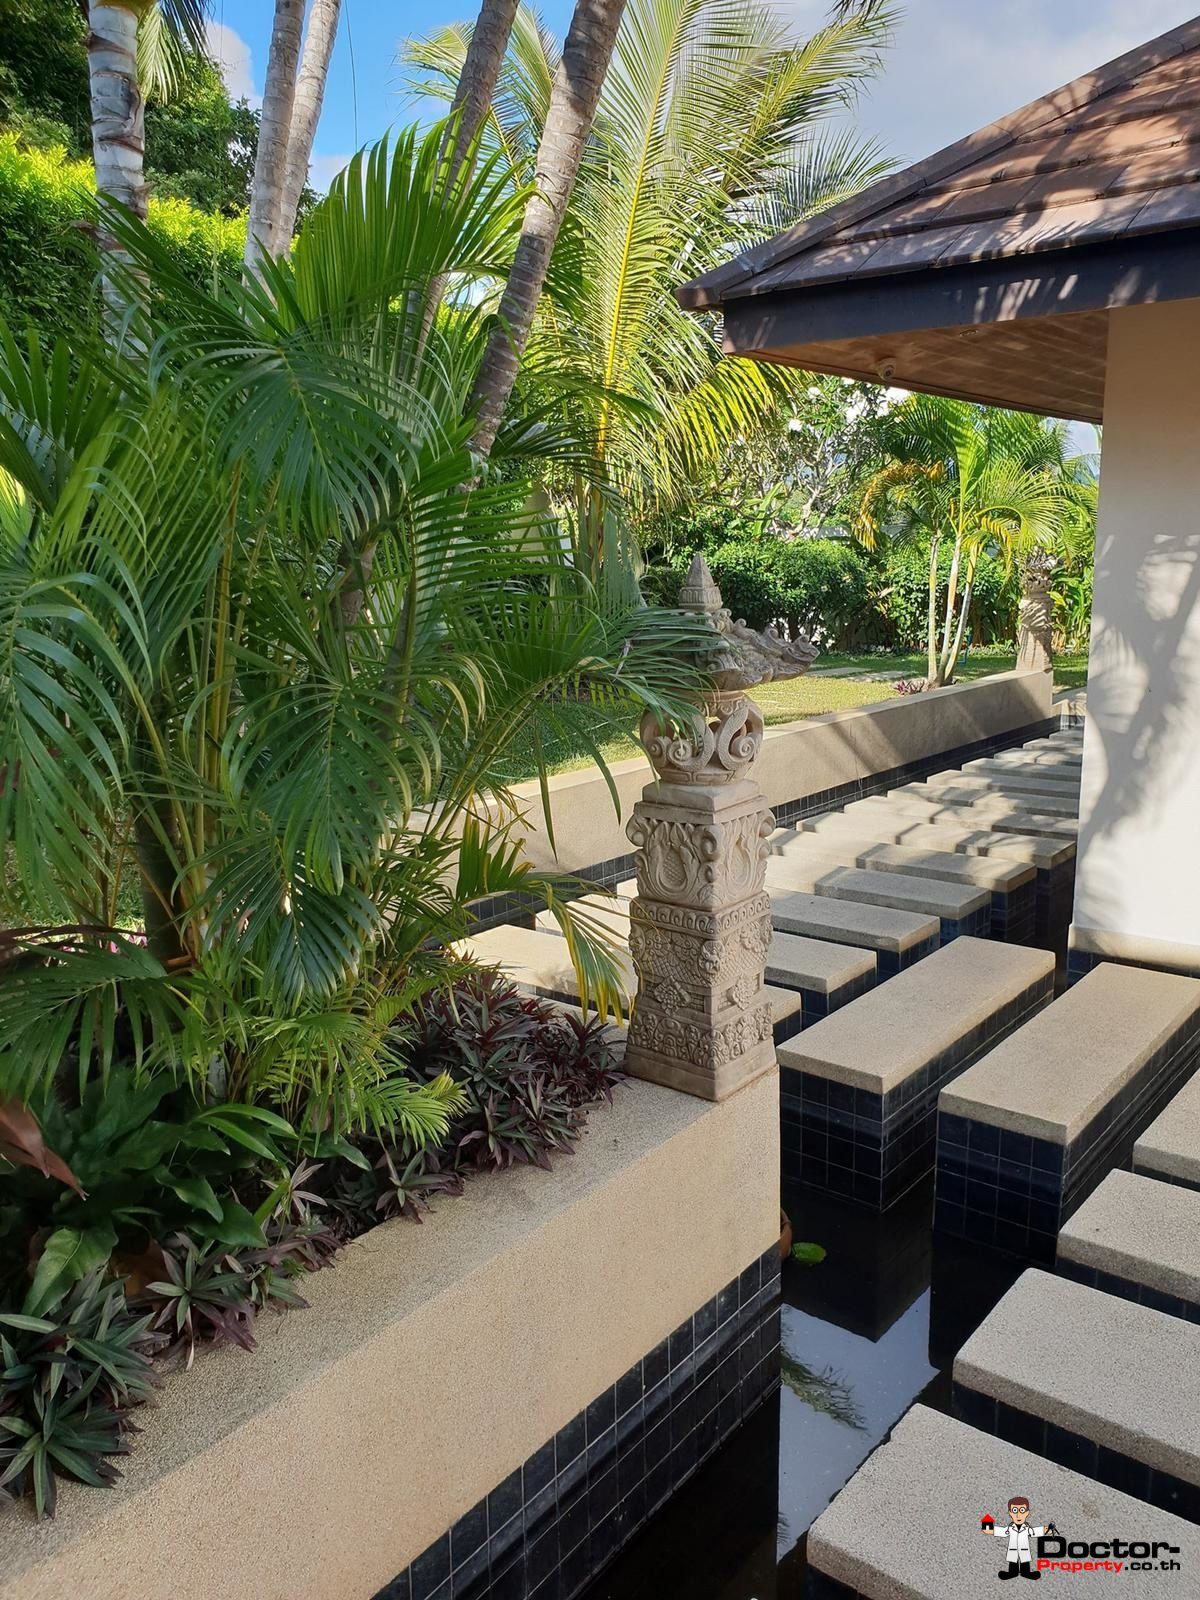 6 Bedroom Villa with Sea View - Bophut - Koh Samui - for sale 12